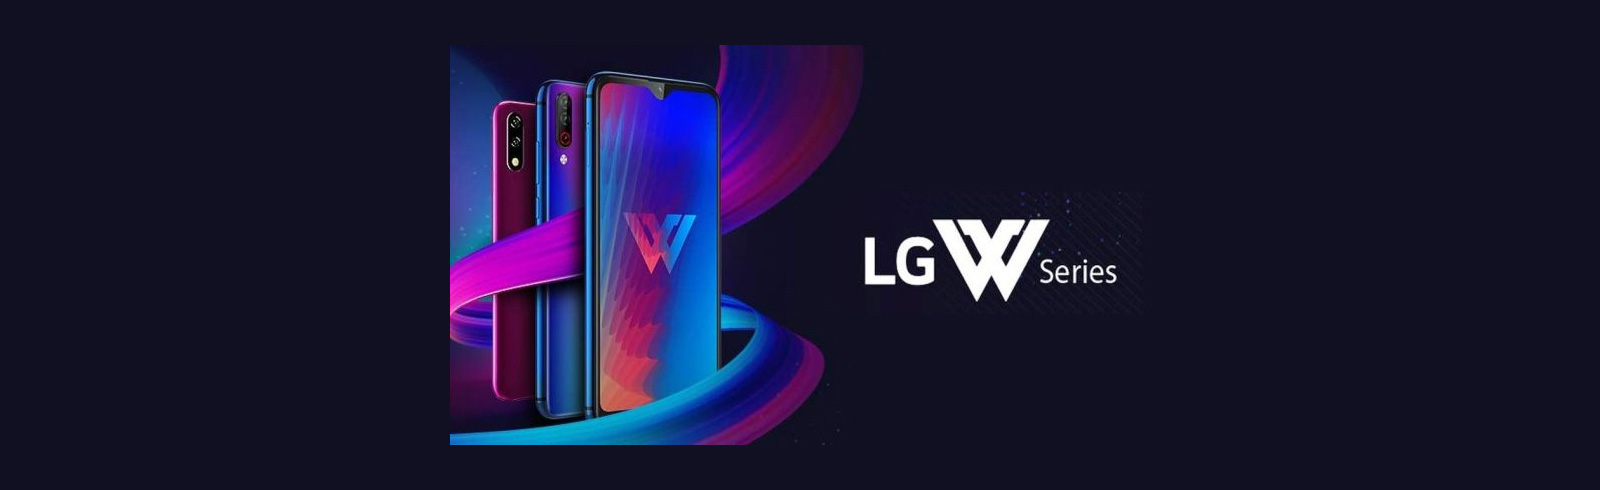 LG India launches the LG W30 Pro, LG W30 and LG W10